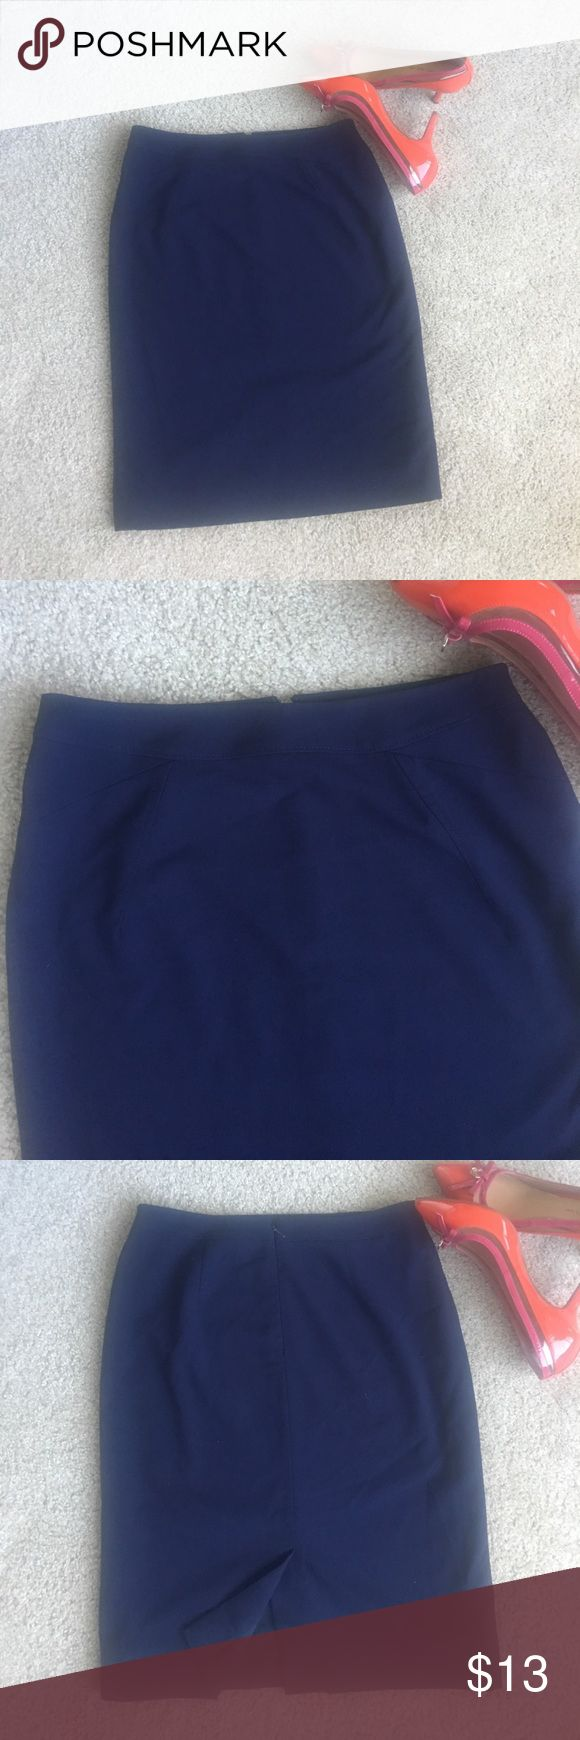 """Antonio Melani navy blue pencil career skirt Cute Navy blue skirt by Antonio melani , cute design infront see pics . Invisible back zipper, black slit. Length 22"""". Fully lined. Size 4 . Great condition ANTONIO MELANI Skirts Pencil"""